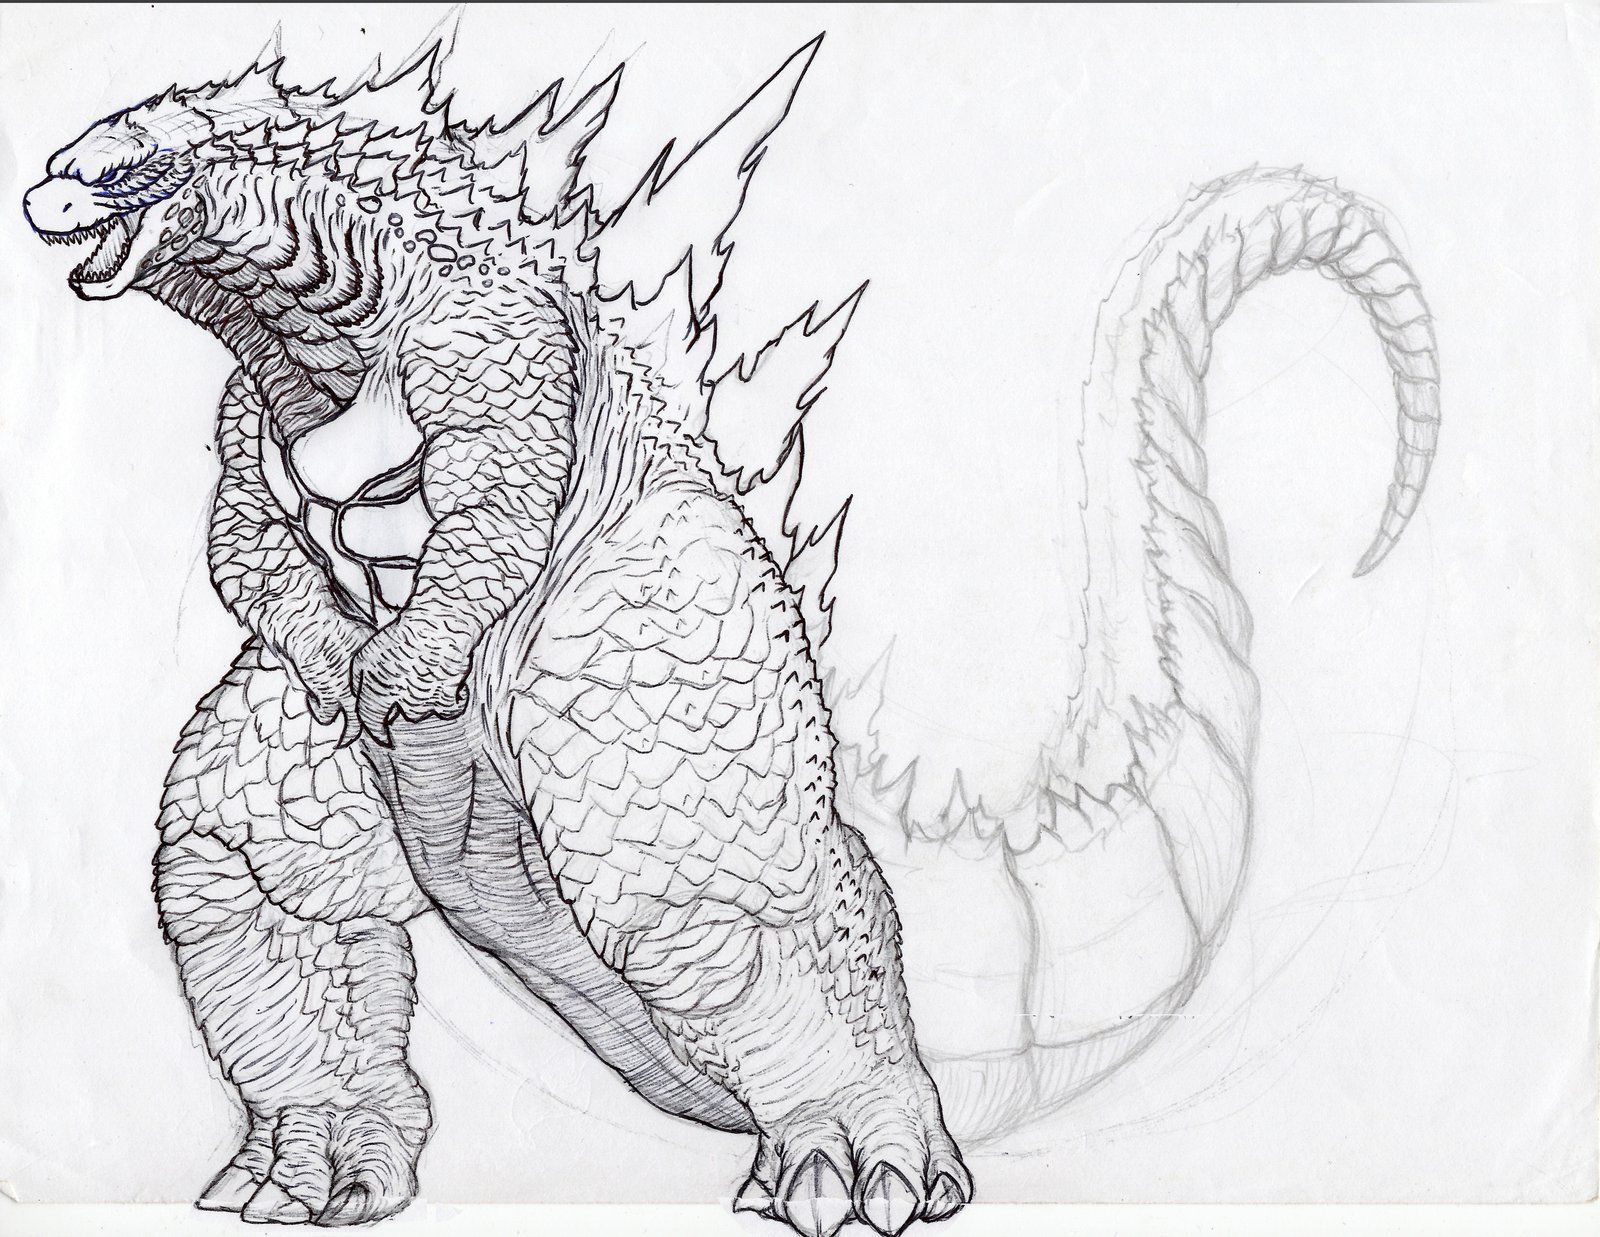 free godzilla 2014 coloring pages - photo#13